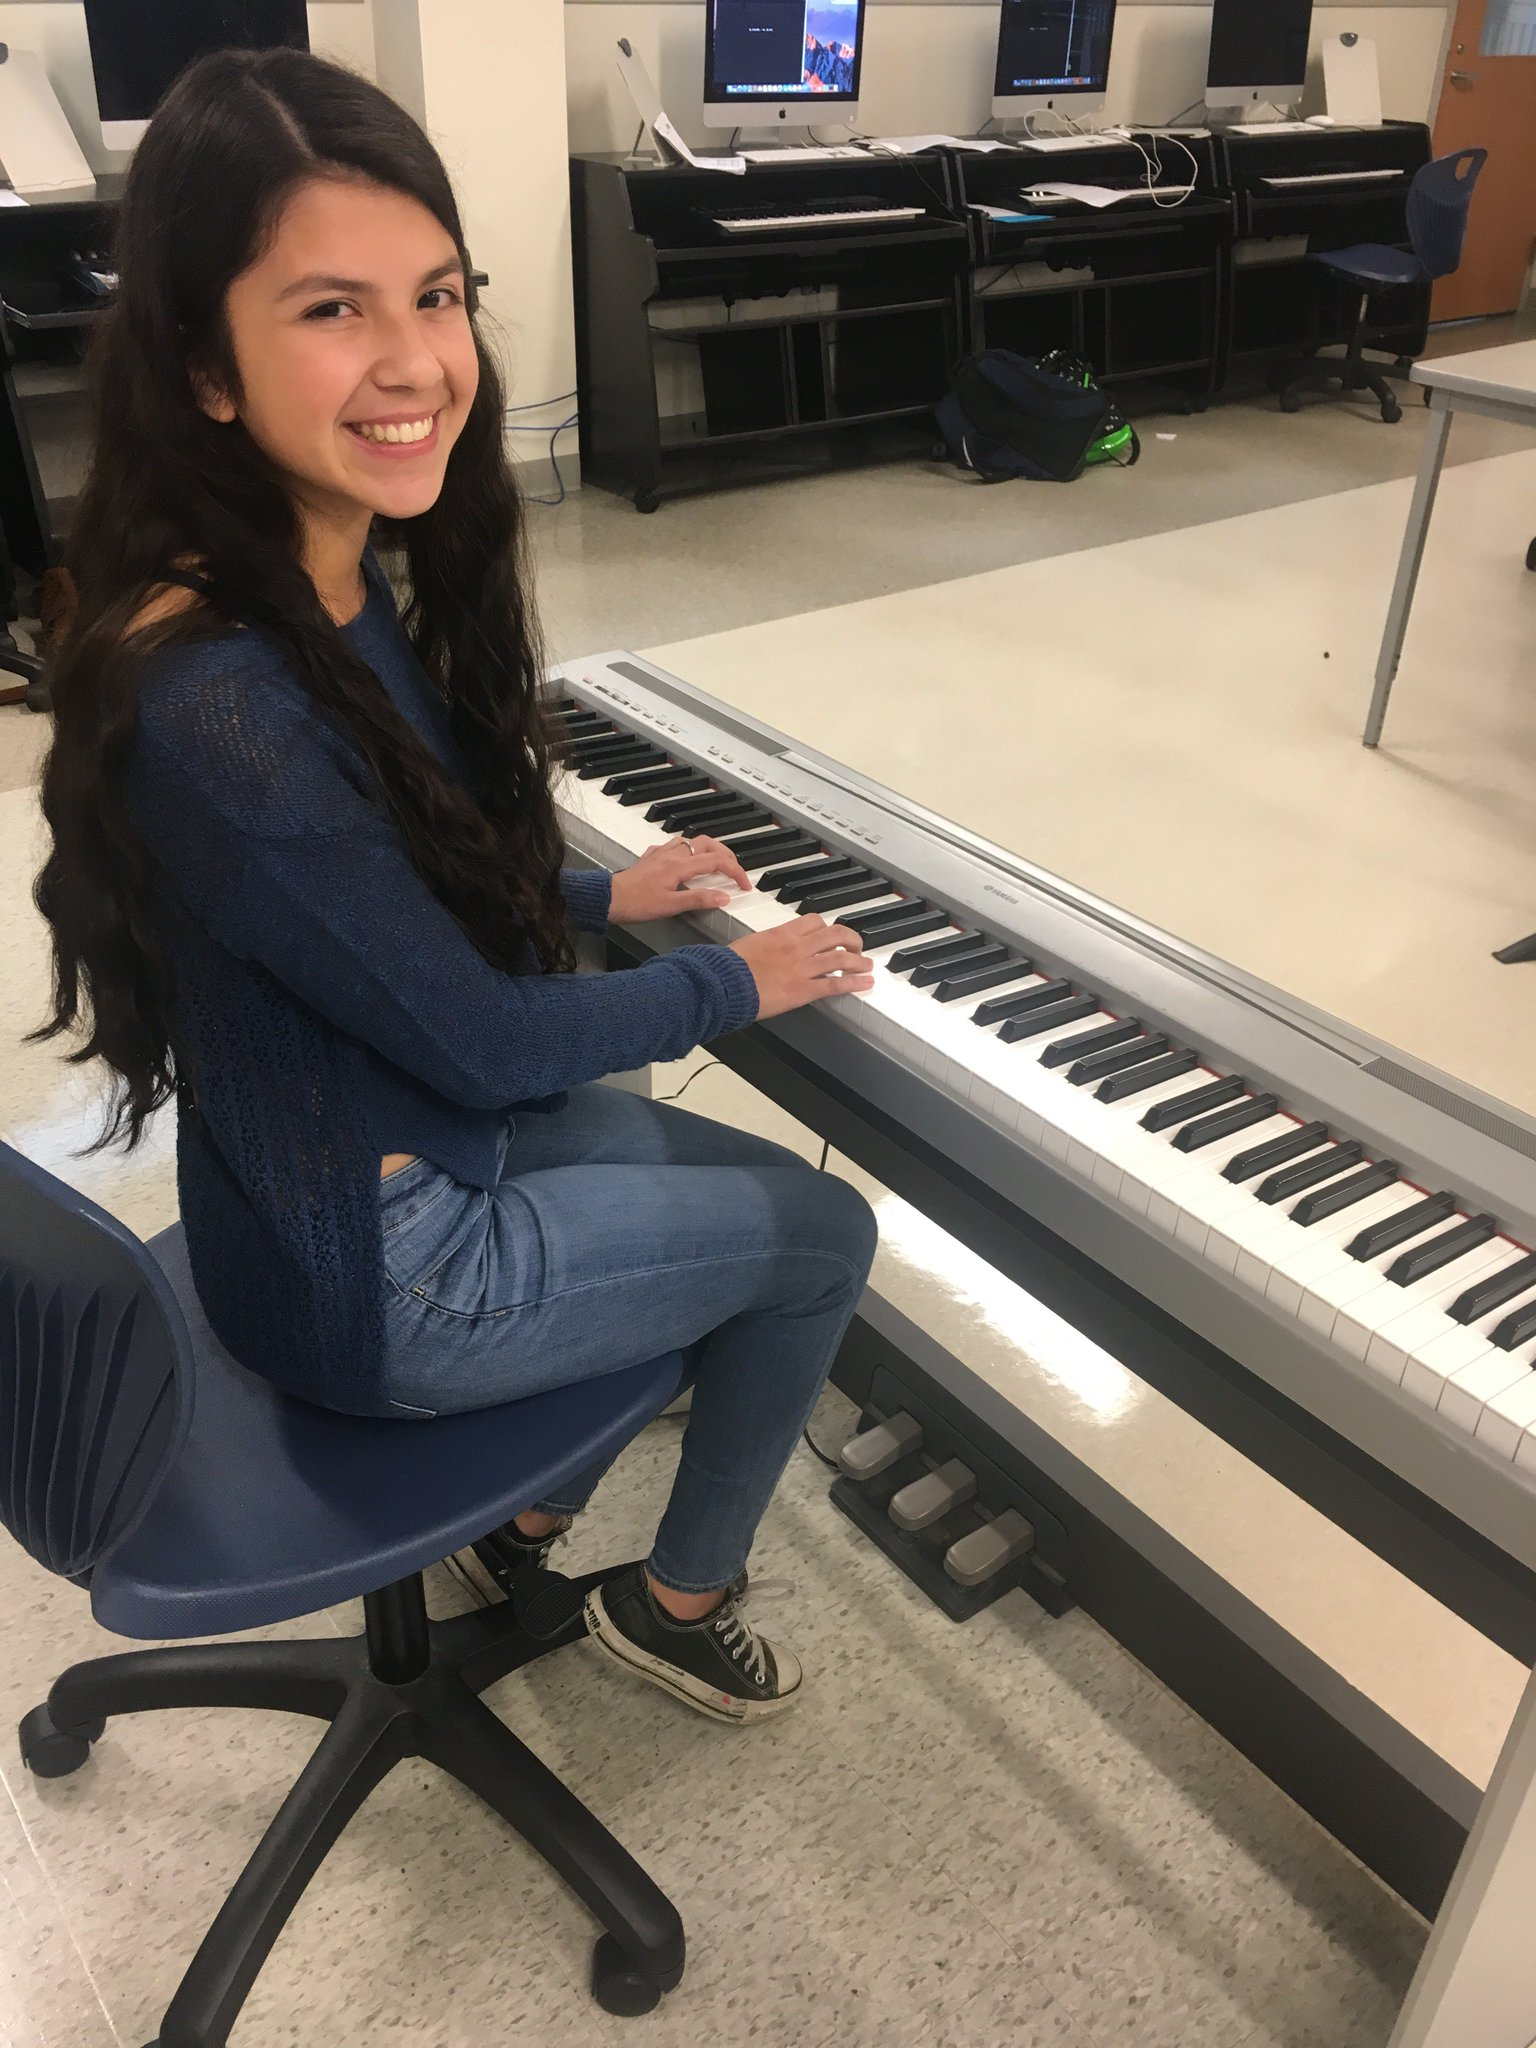 Reloaded twaddle – RT @MethuenArts: Methuen Fine Arts Student of the Week! MHS! Mia Torres is our i...